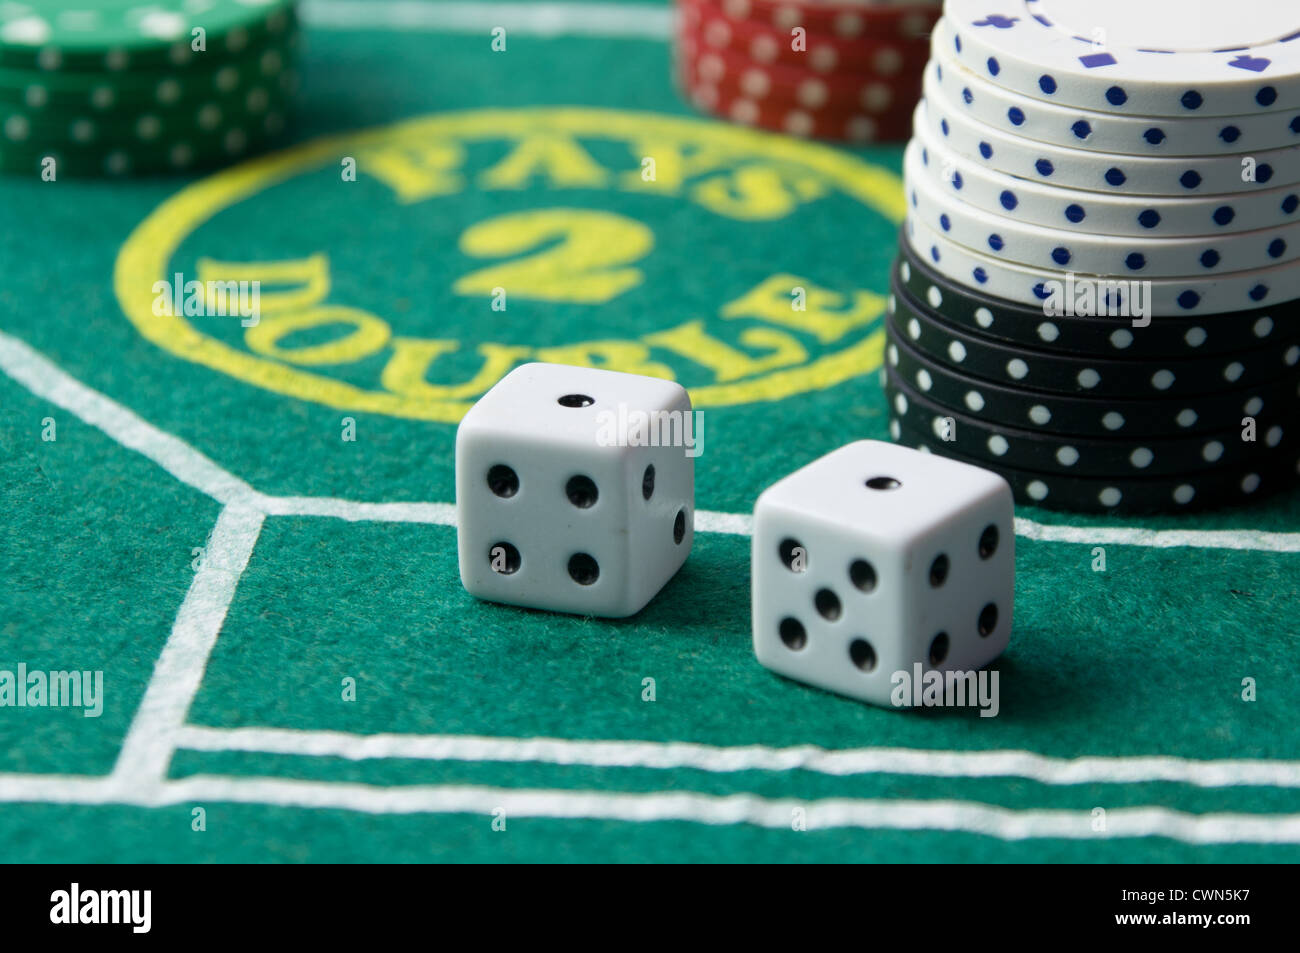 Craps table with casino chips and dice - Stock Image